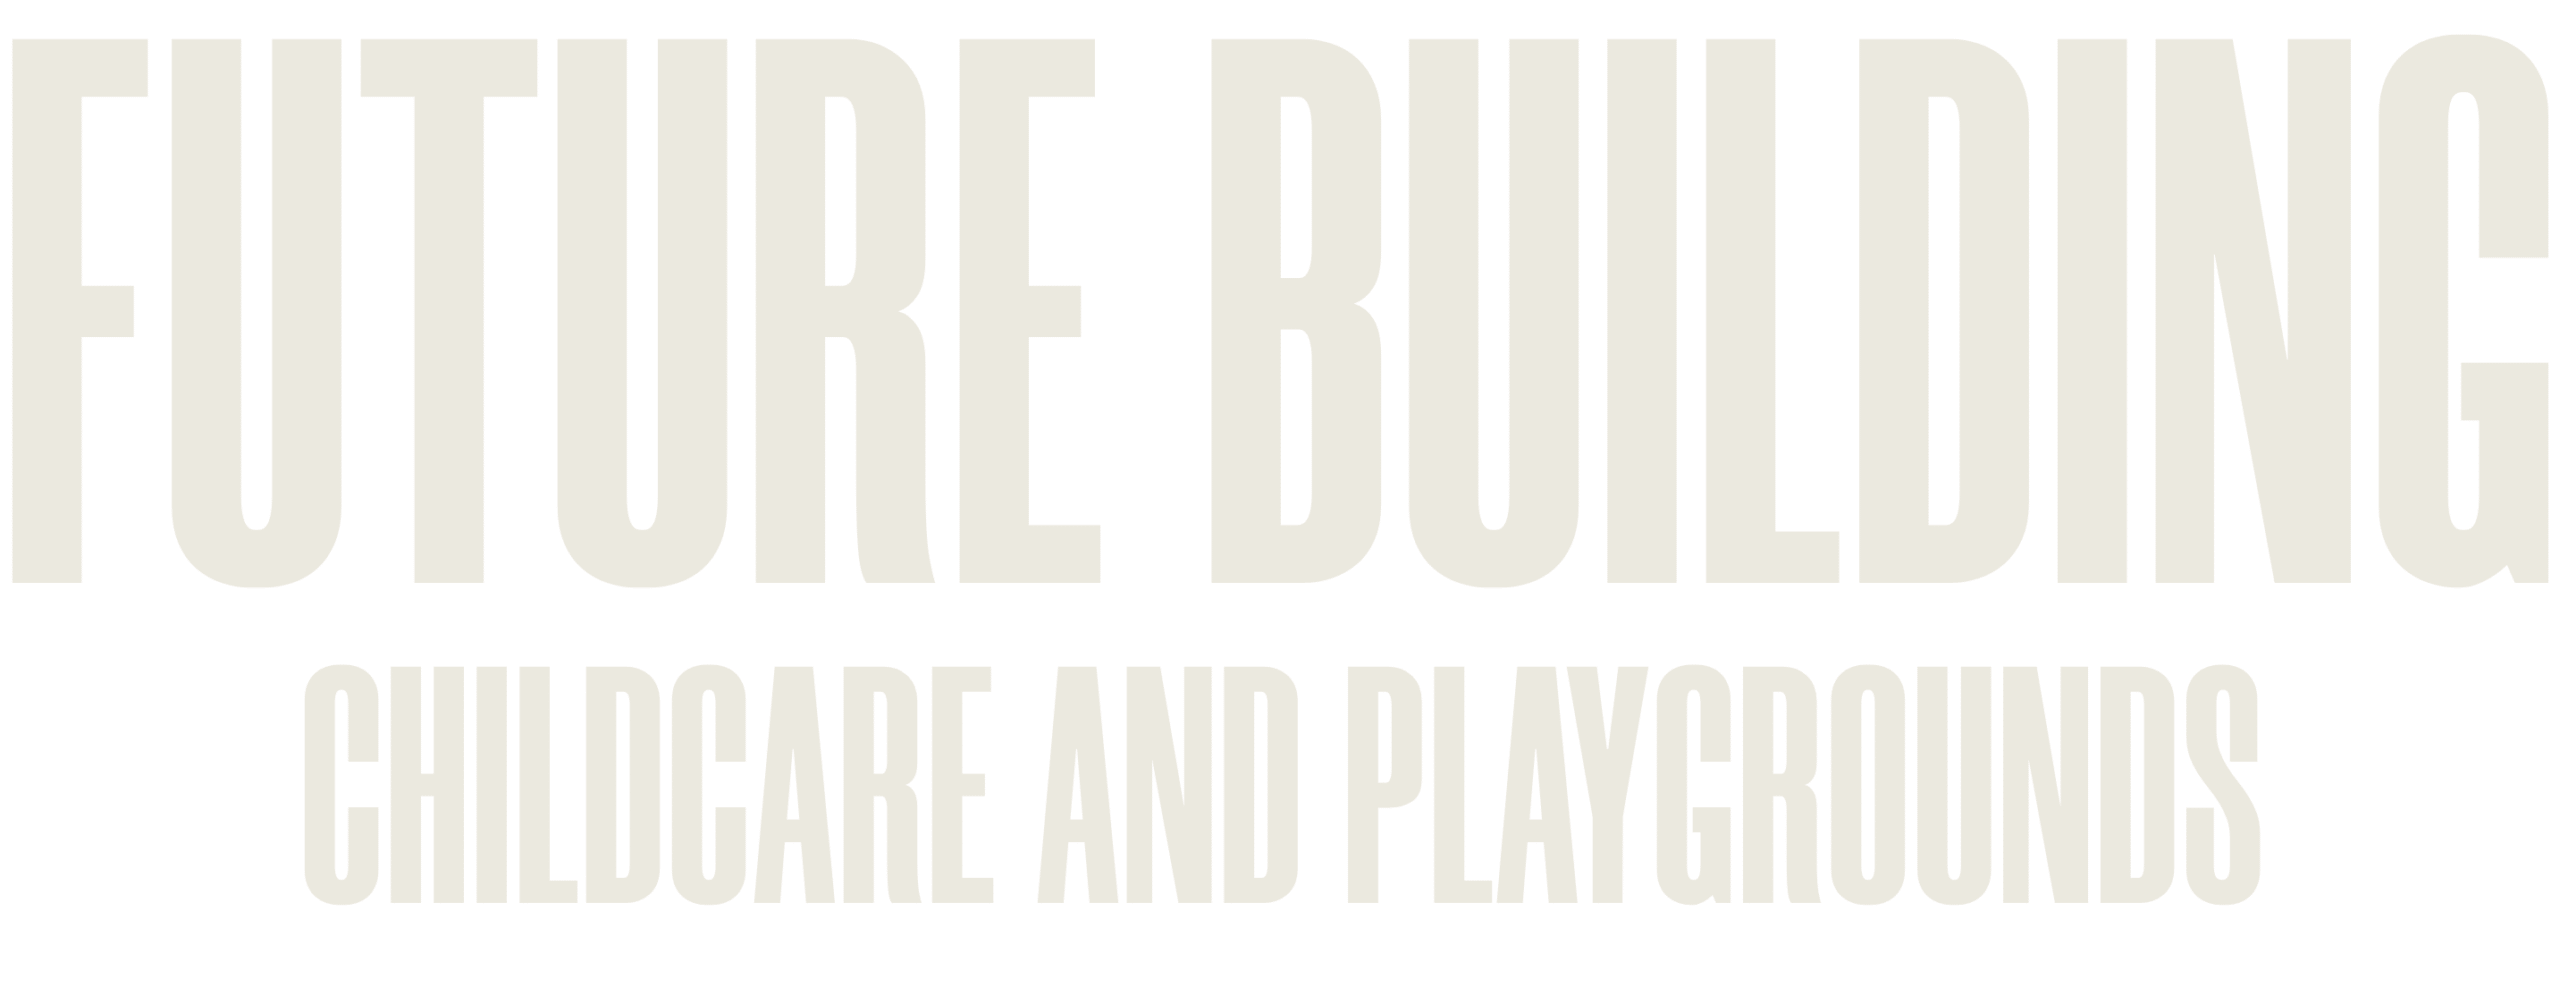 Future building childcare and playgrounds